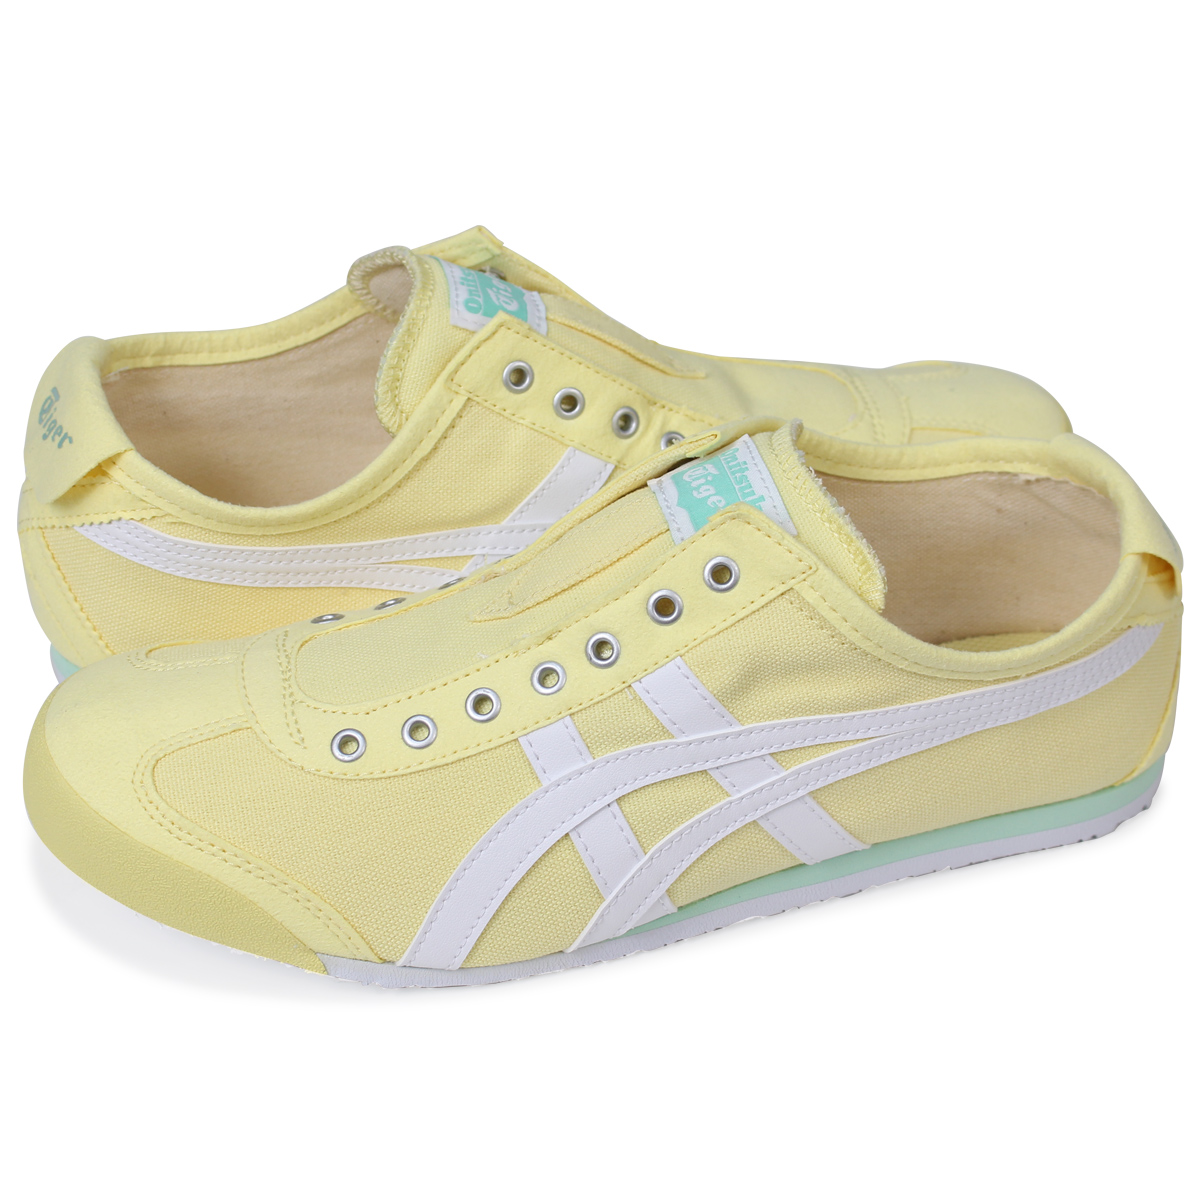 innovative design 30df7 ffad1 Onitsuka Tiger MEXICO 66 SLIP-ON Onitsuka tiger Mexico 66 slip-ons men gap  Dis sneakers TH3K0N-0301 yellow